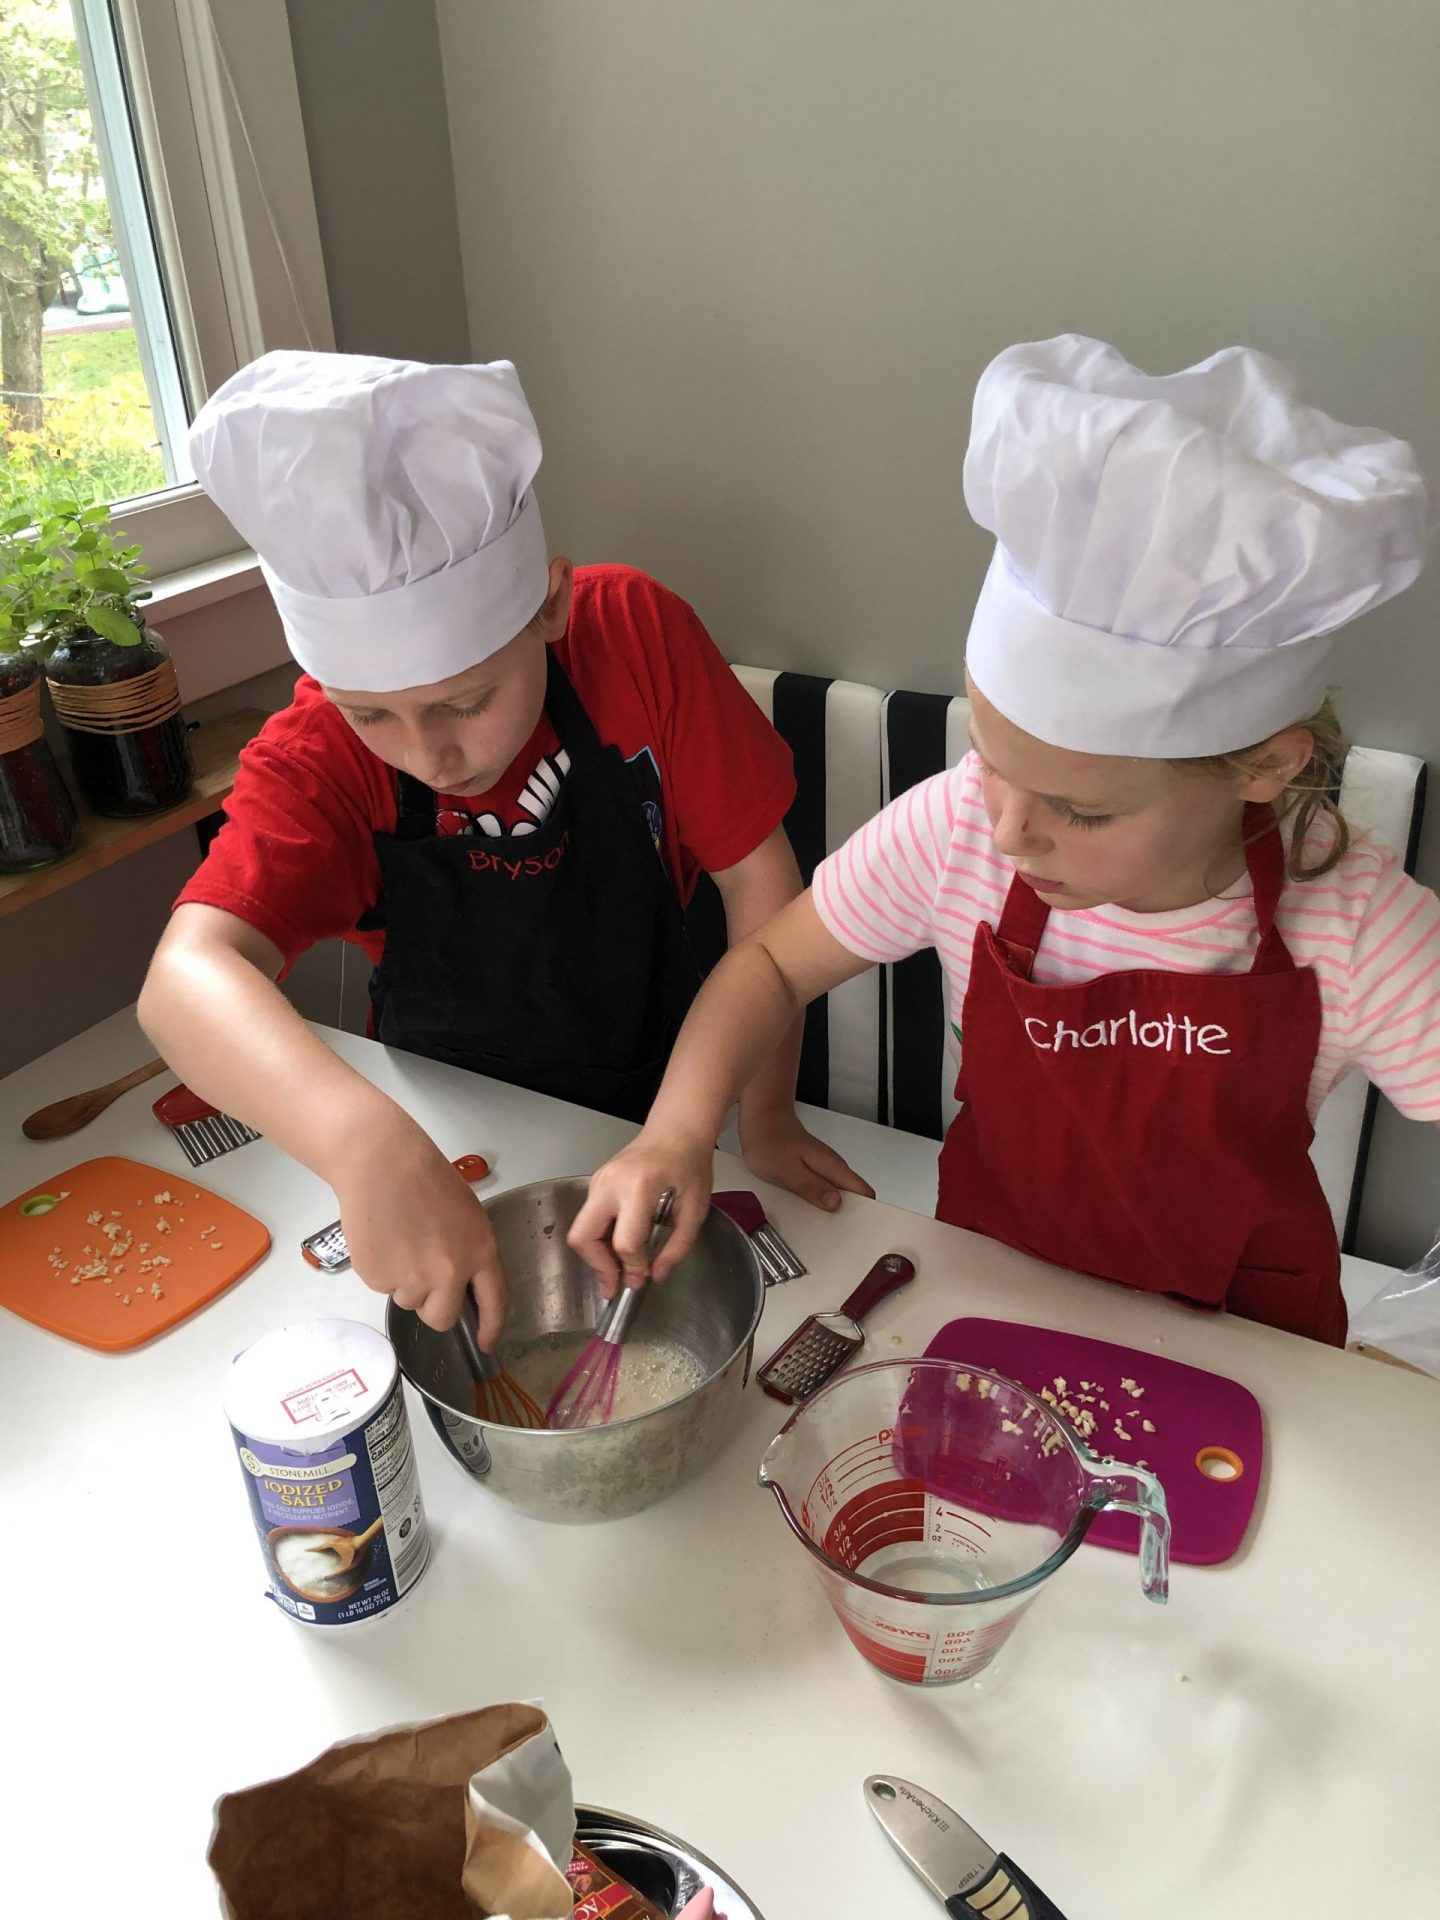 Online Resources for Kids- The Kids Table